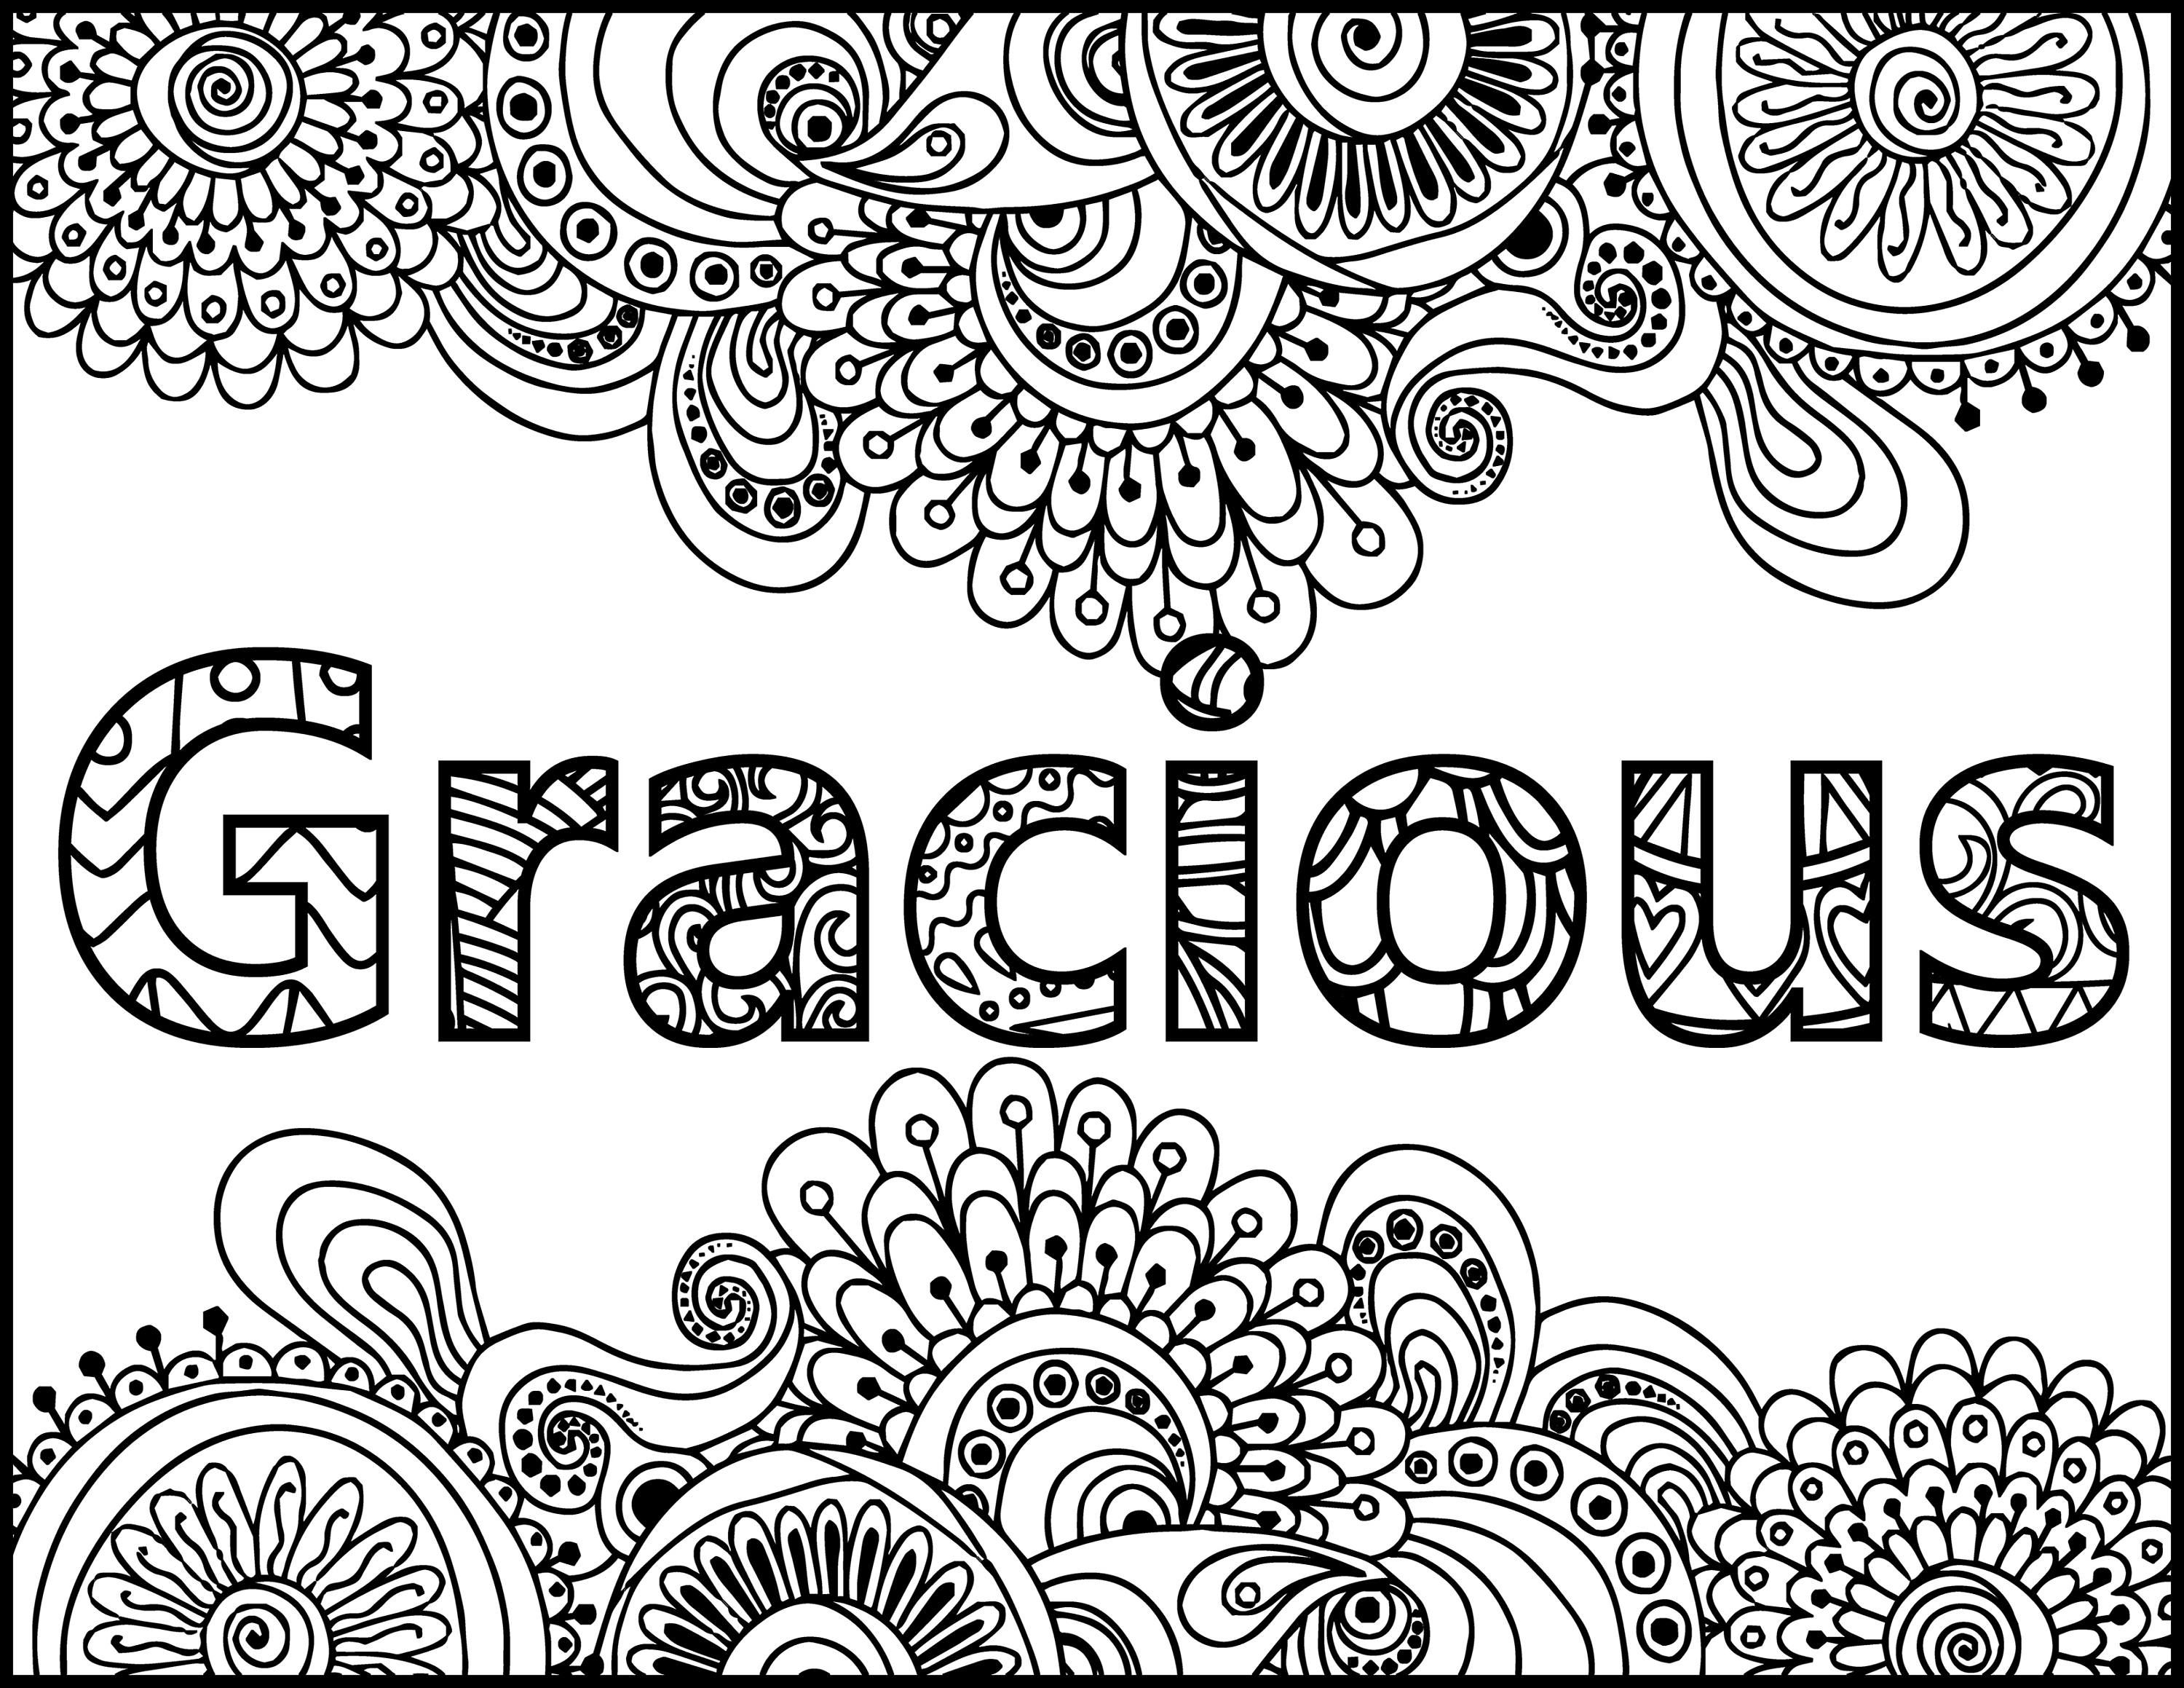 5 Printable Coloring Pages I AM Coloring Bundle Coloring Pages